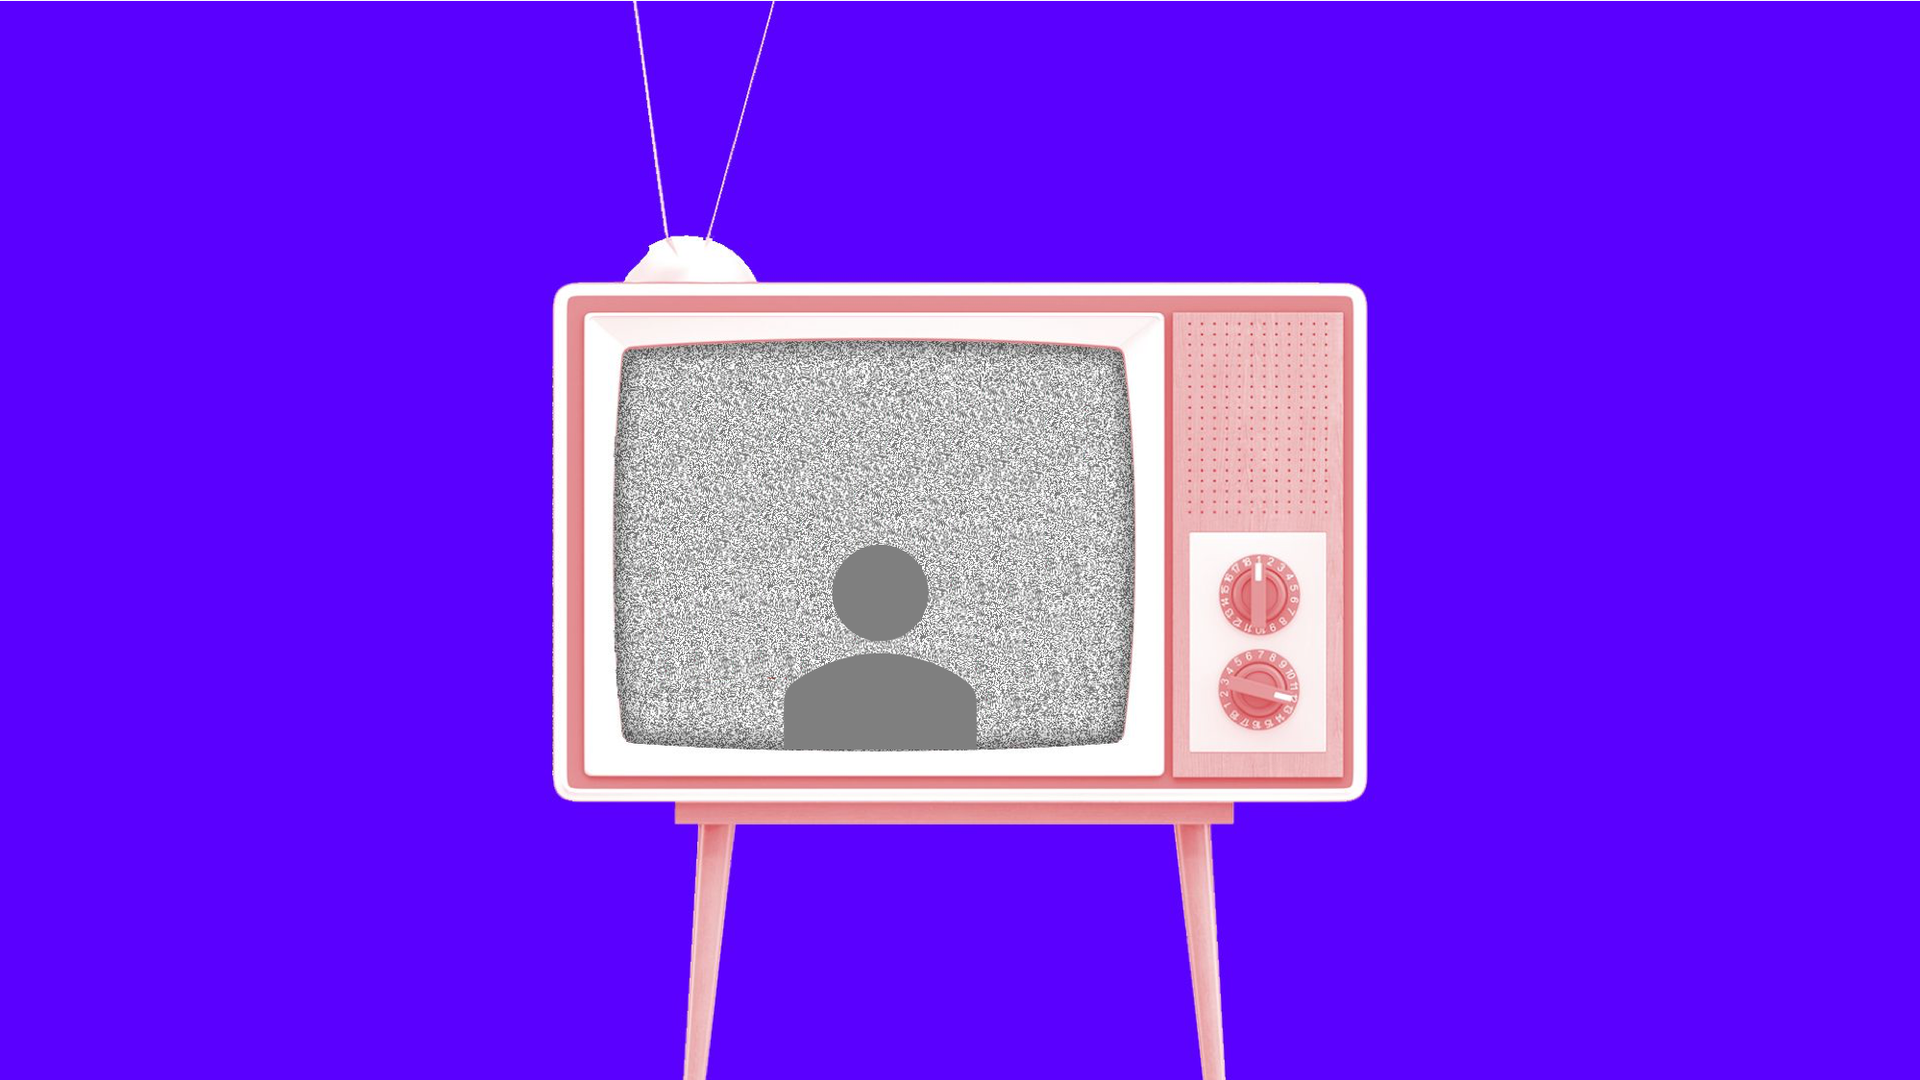 Illustration of a TV set with a social media icon on screen